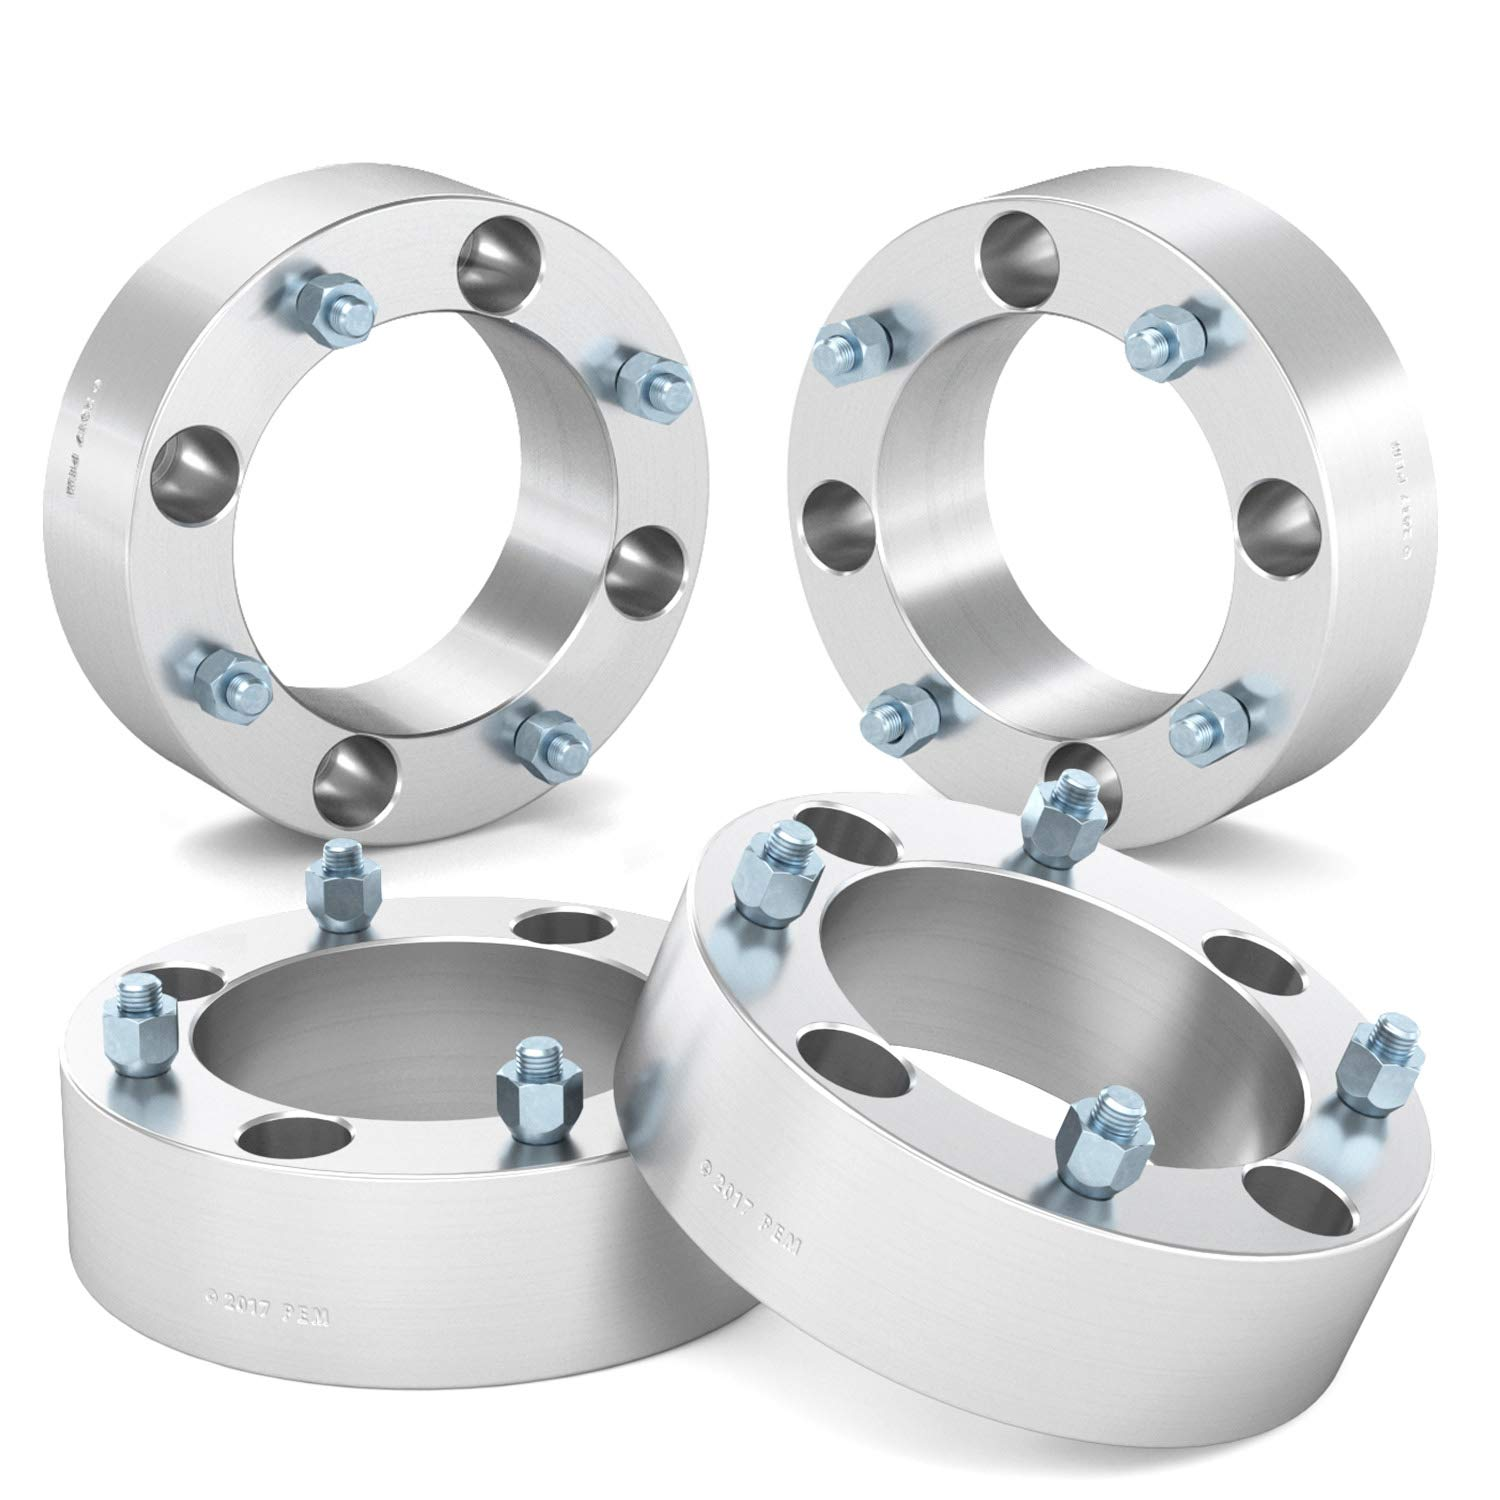 RockTrix for Precision European (4) 2'' Thick 4x137 ATV Wheel Spacers - 10x1.25 Studs for Kawasaki Can Am Can-Am: Brute Force Mule Outlander Commander Maverick Renegade Bombardier, bobcat wheel spacers by RockTrix (Image #3)